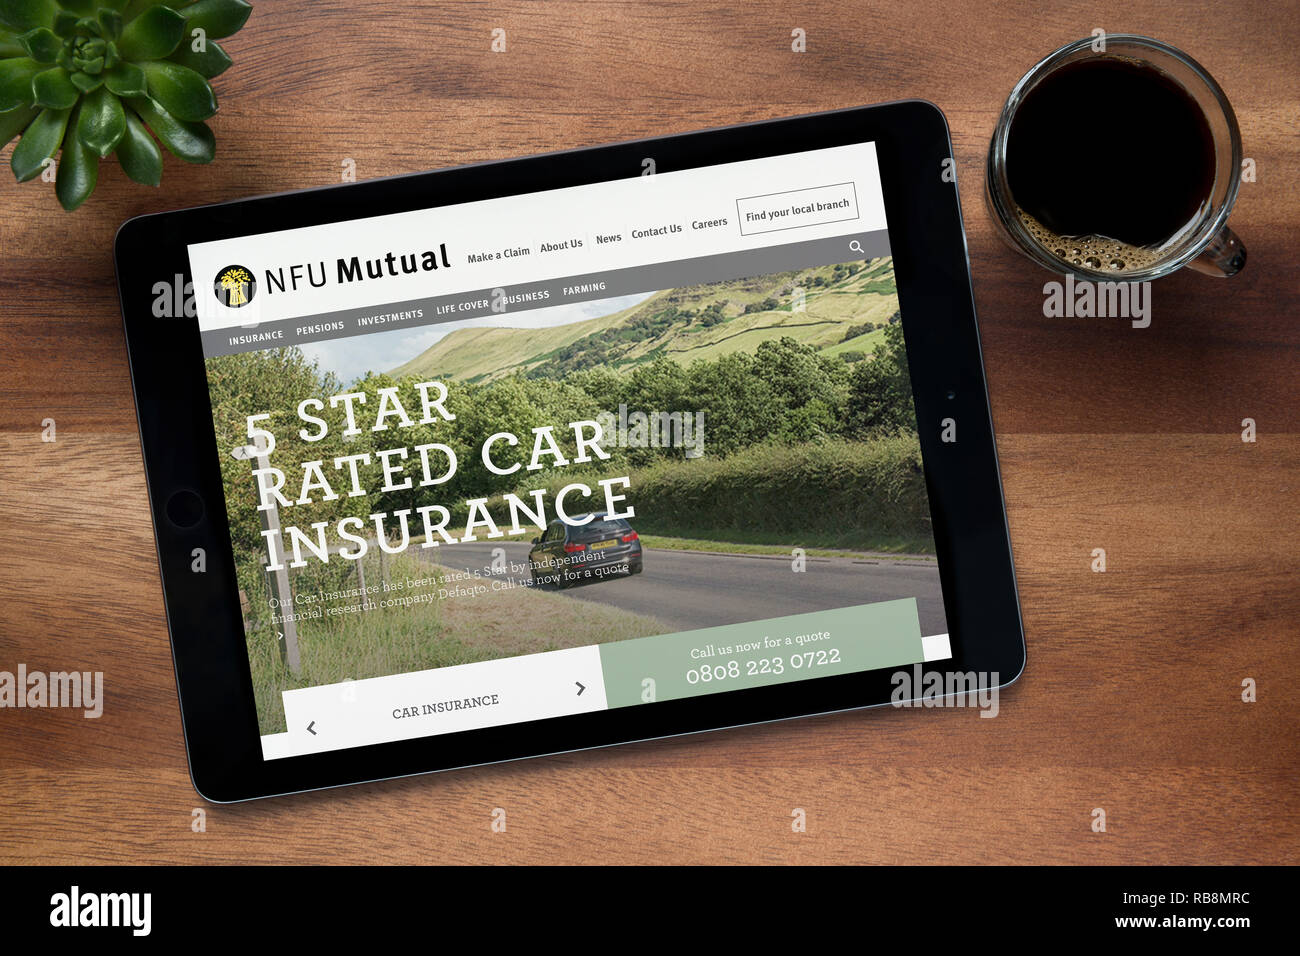 The website of NFU Mutual is seen on an iPad tablet, on a wooden table along with an espresso coffee and a house plant (Editorial use only). - Stock Image